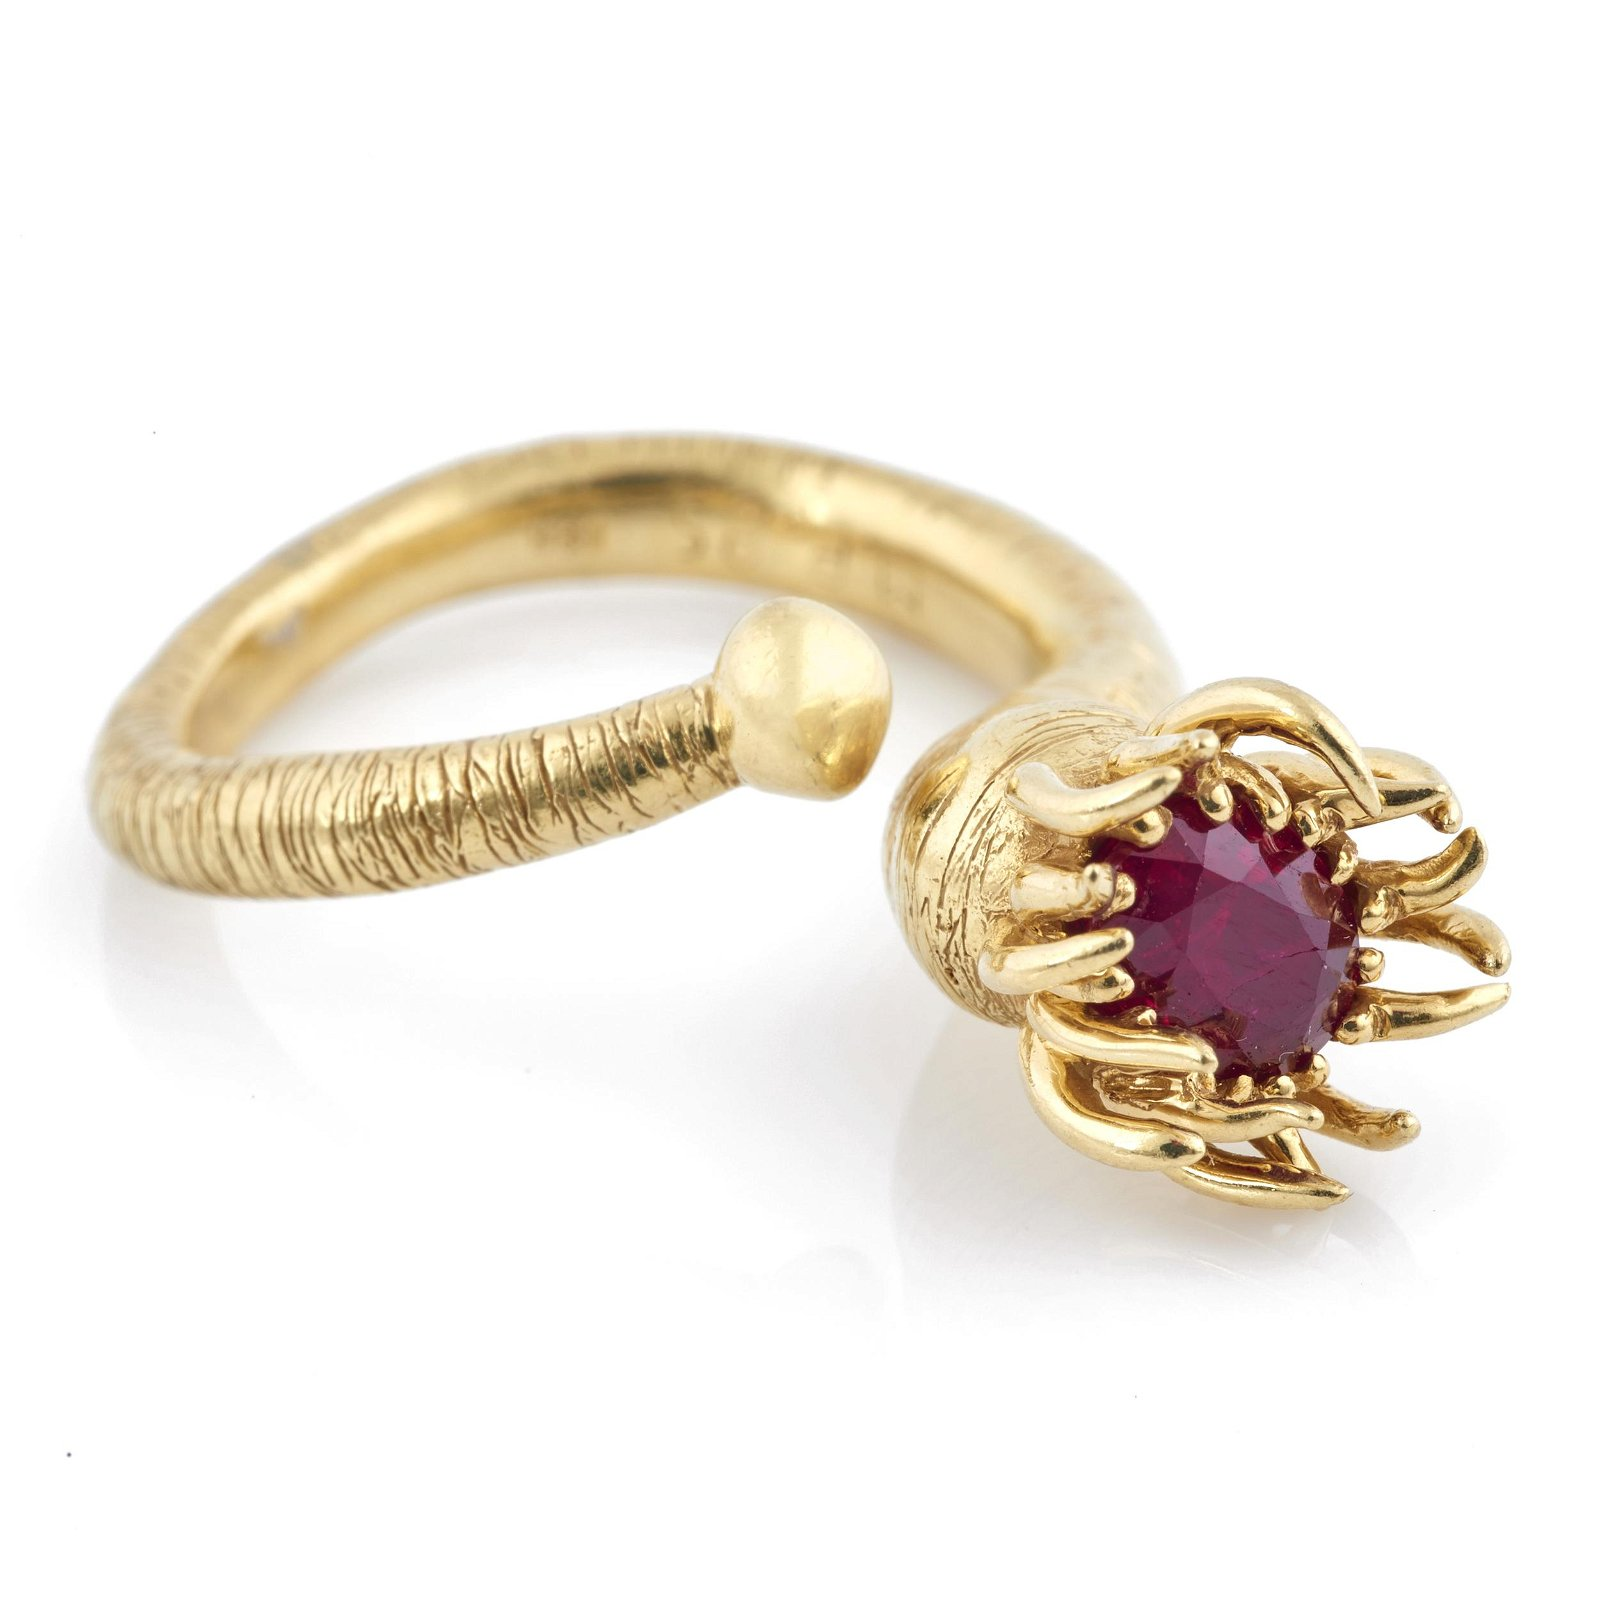 A ruby, 18k yellow gold sea anemone ring